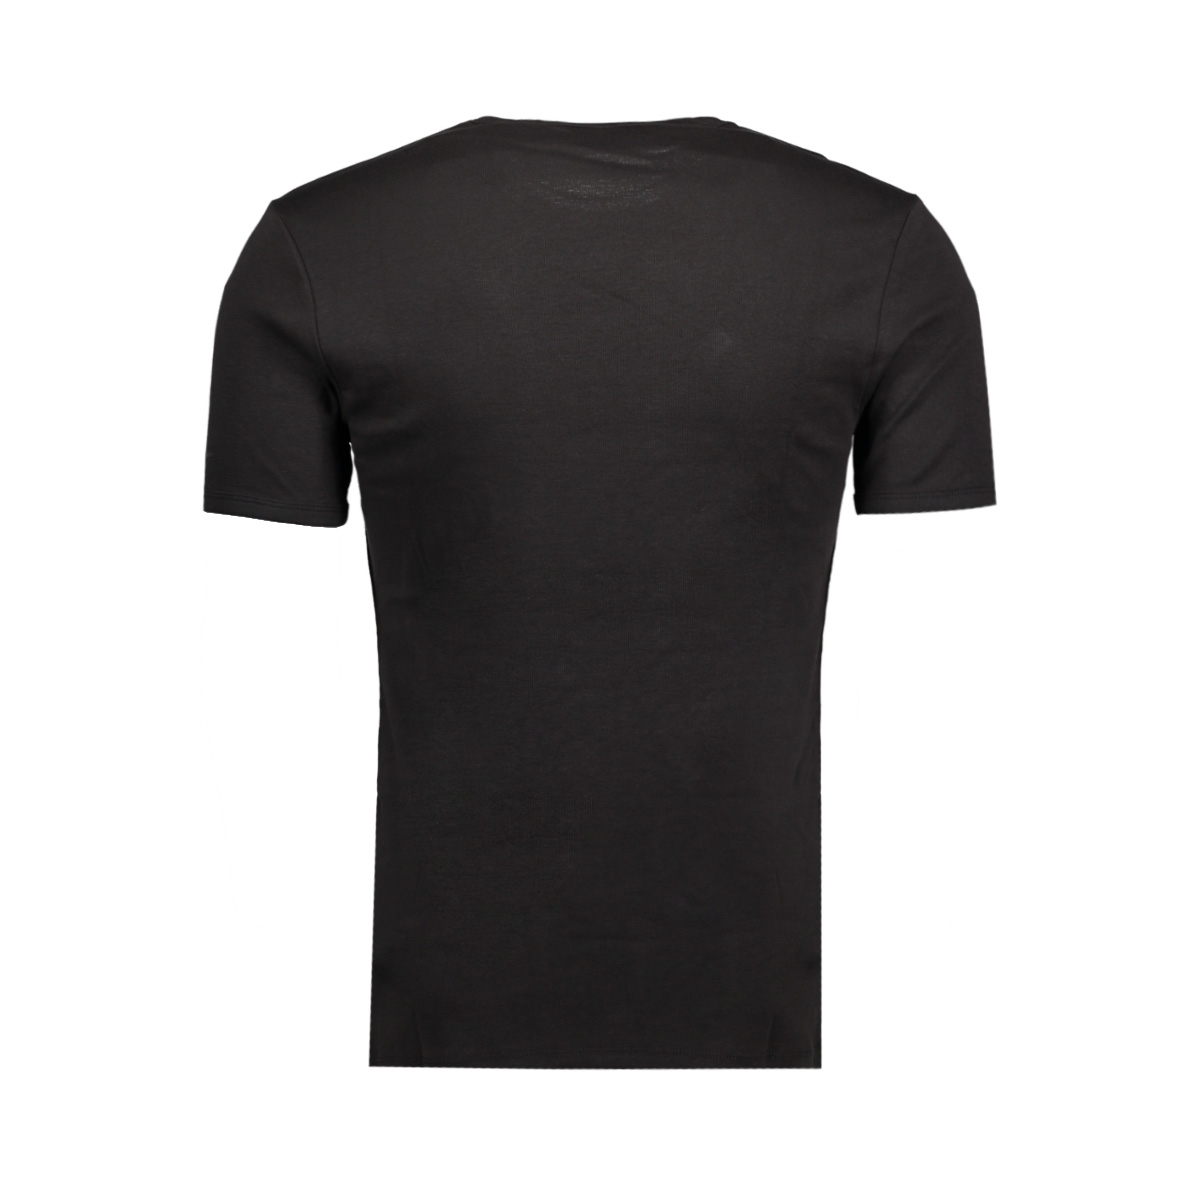 G-Star g-star basic v hals t-shirt 2 pack